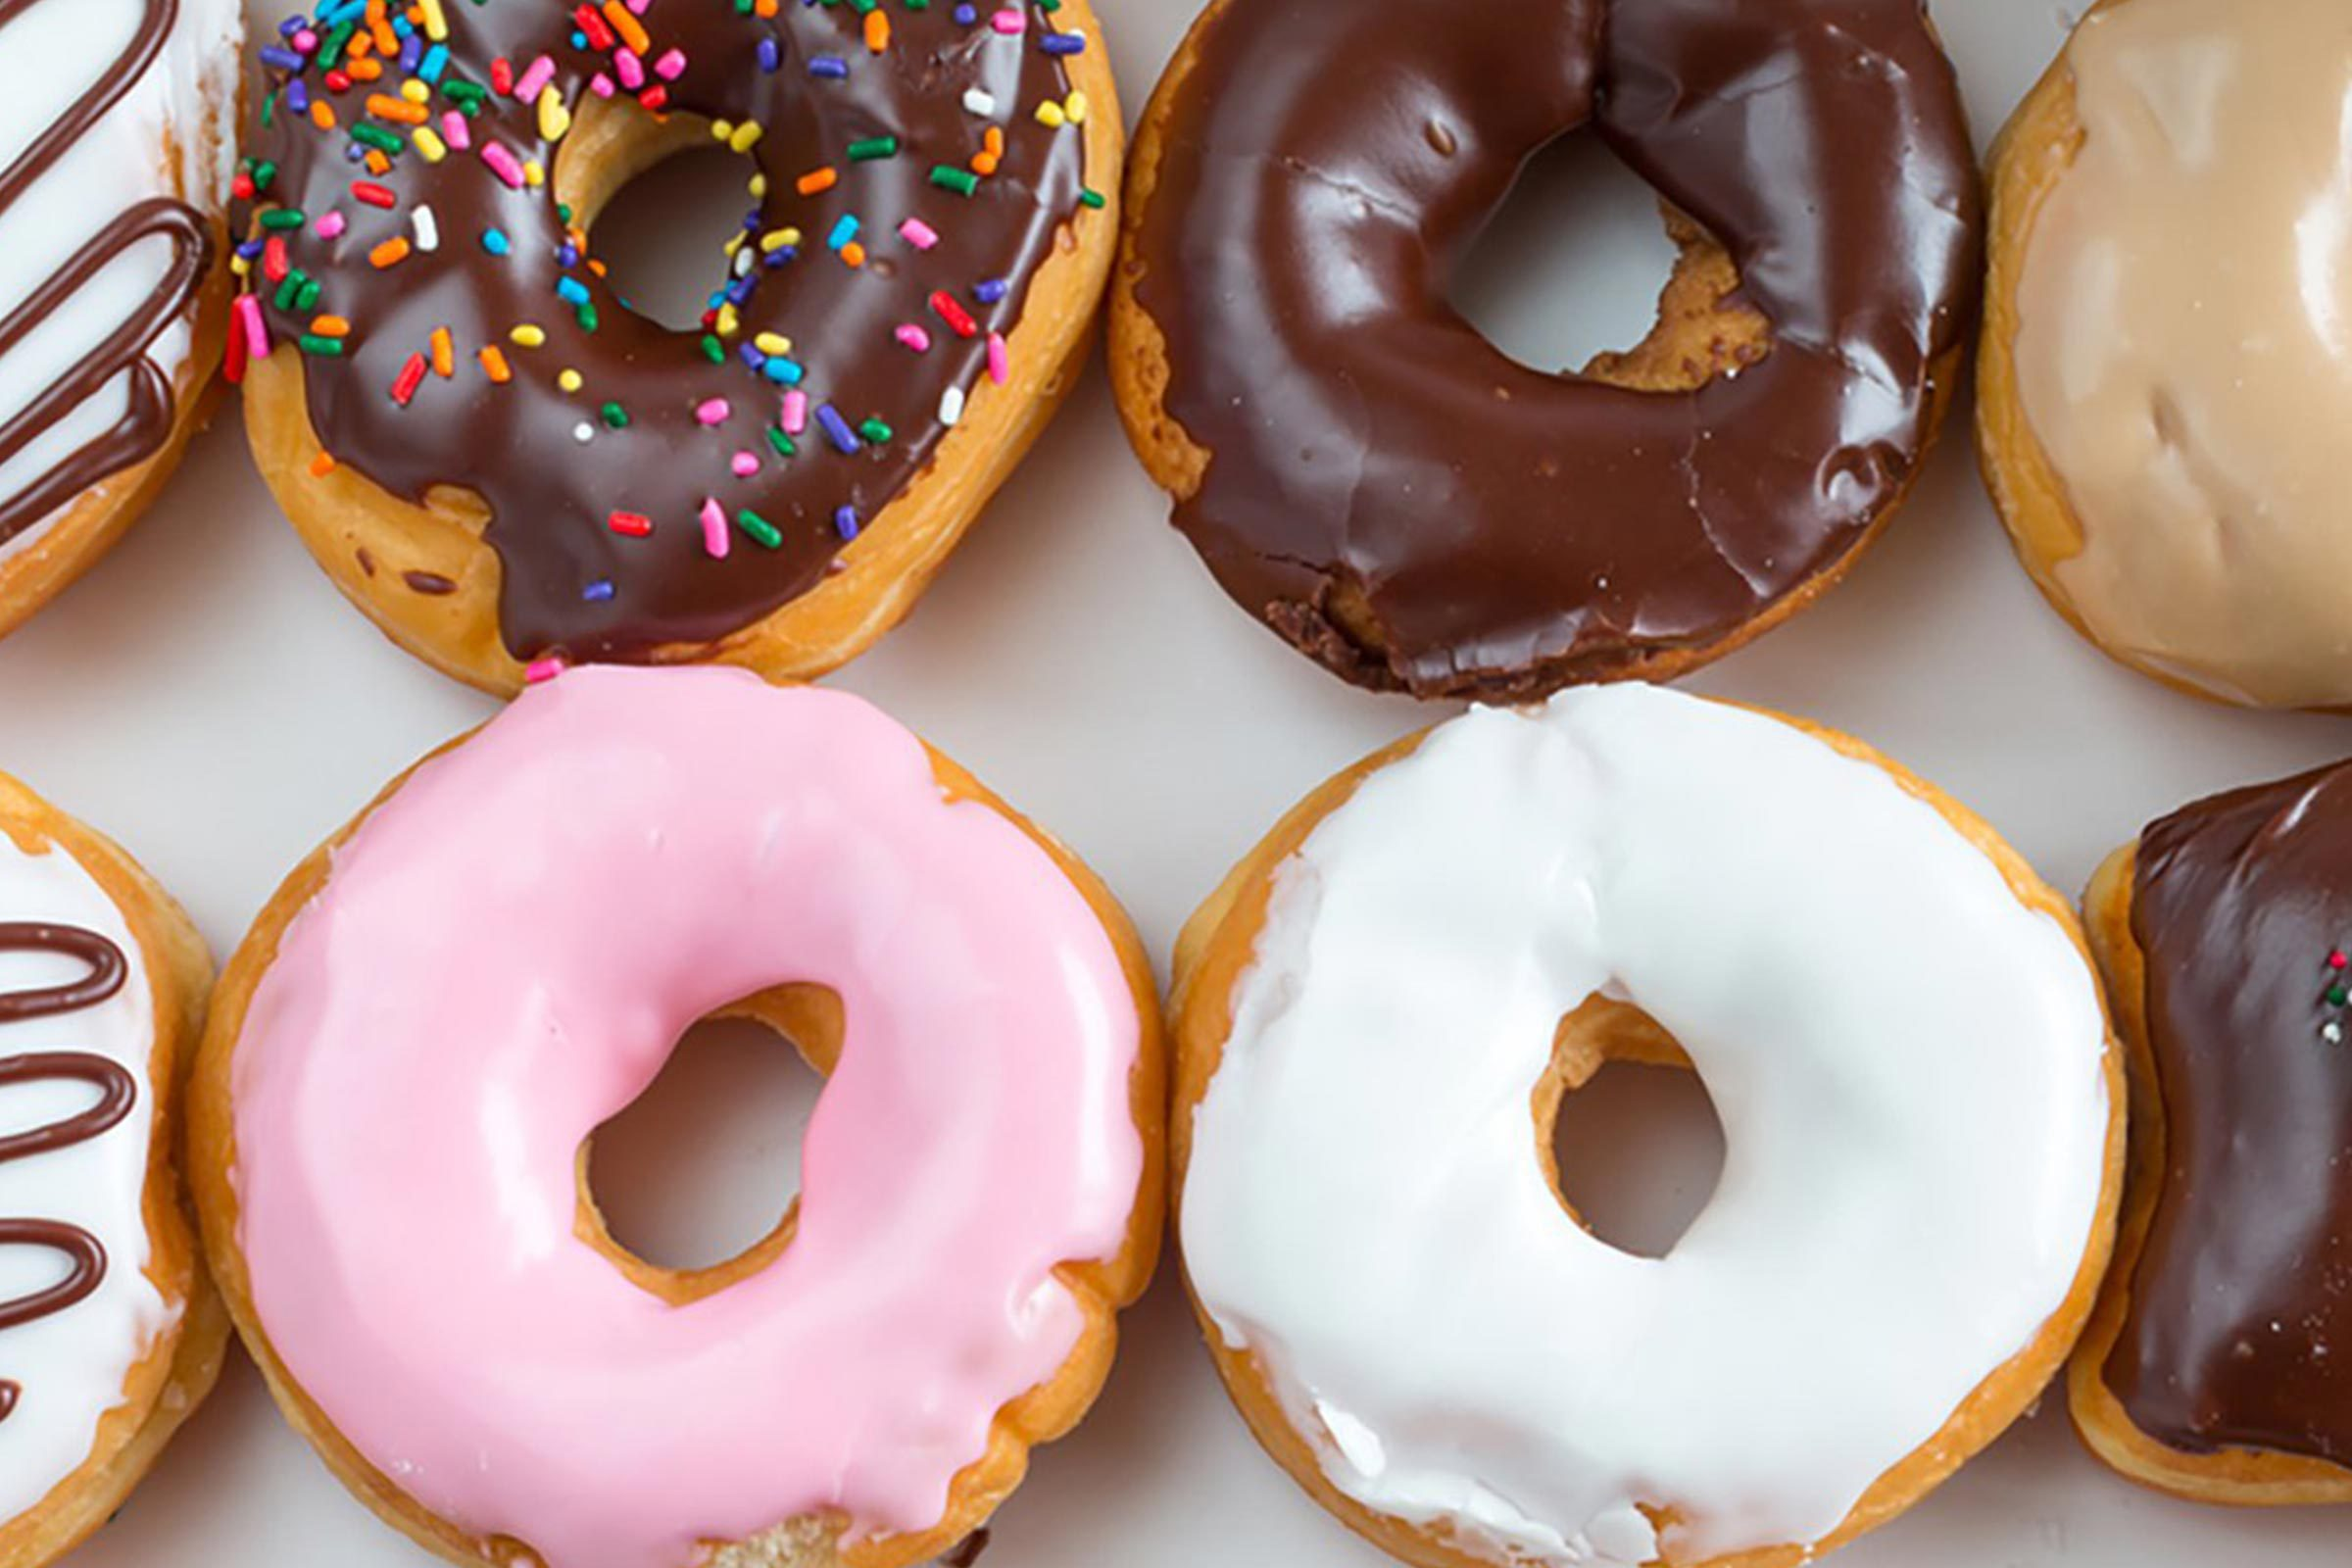 Secrets Dunkin' Donuts Employees Want You to Know  Reader's Digest